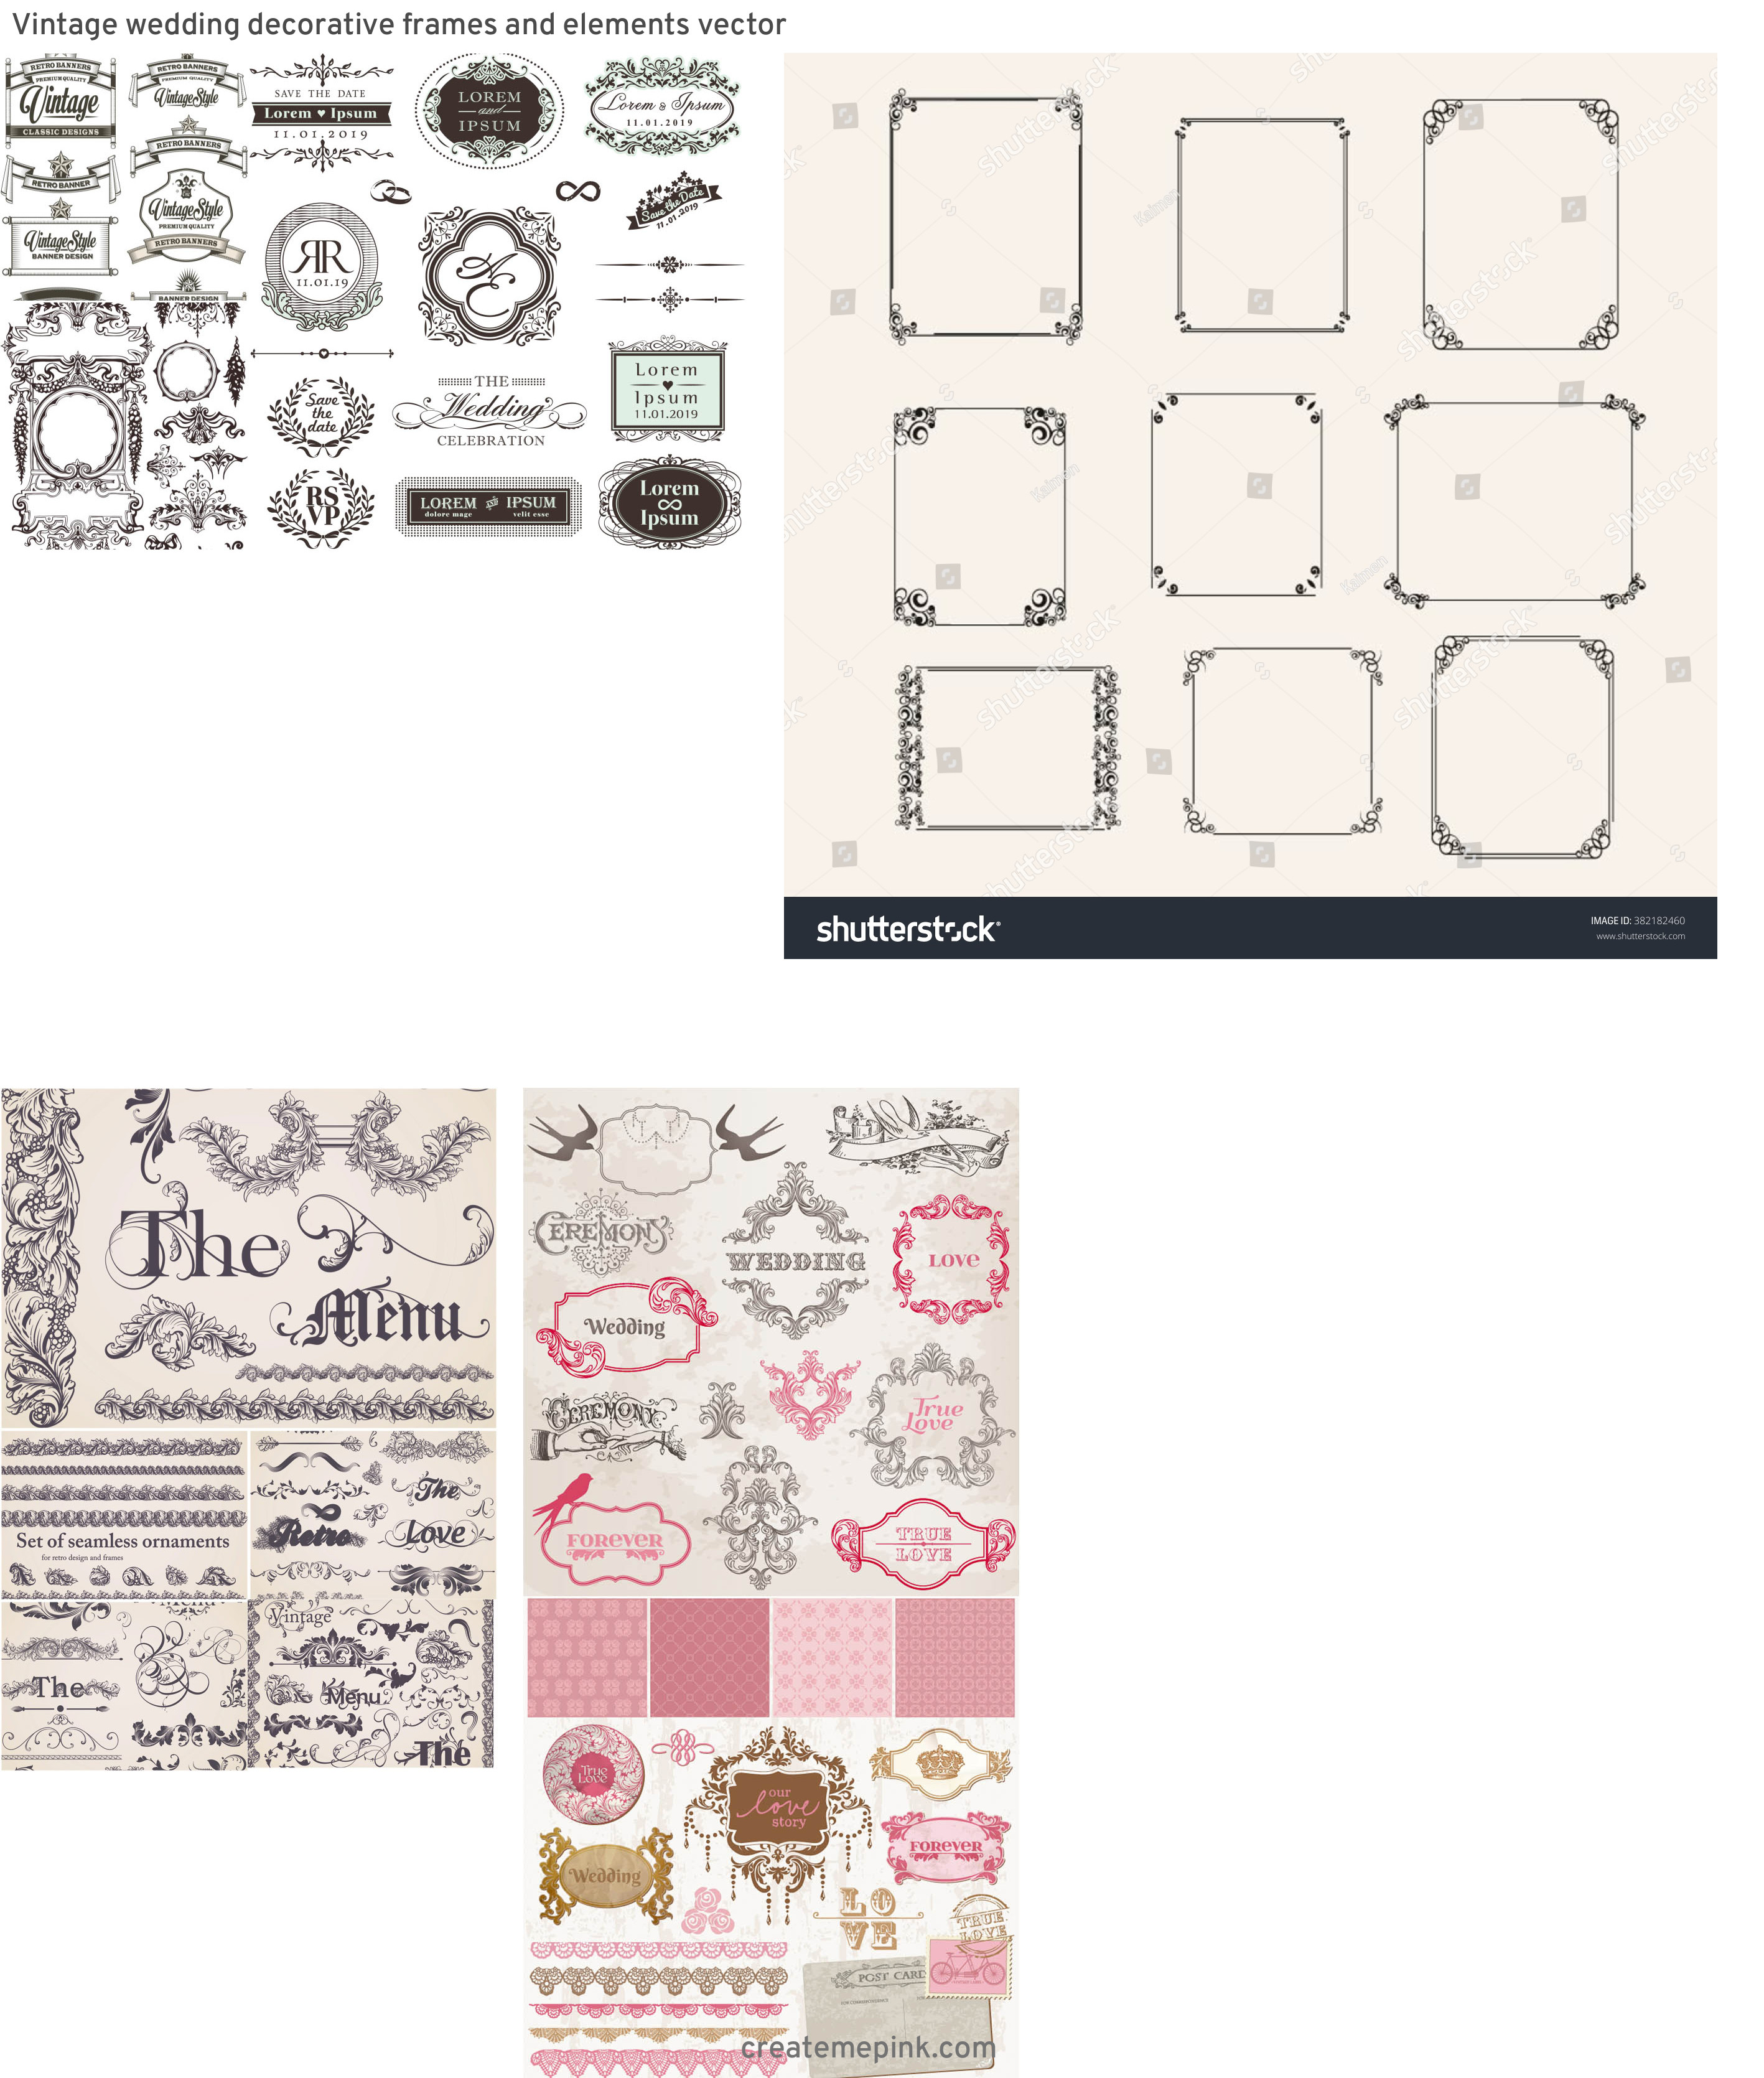 Elements Of Vector Vintage Decorative Frame: Vintage Wedding Decorative Frames And Elements Vector